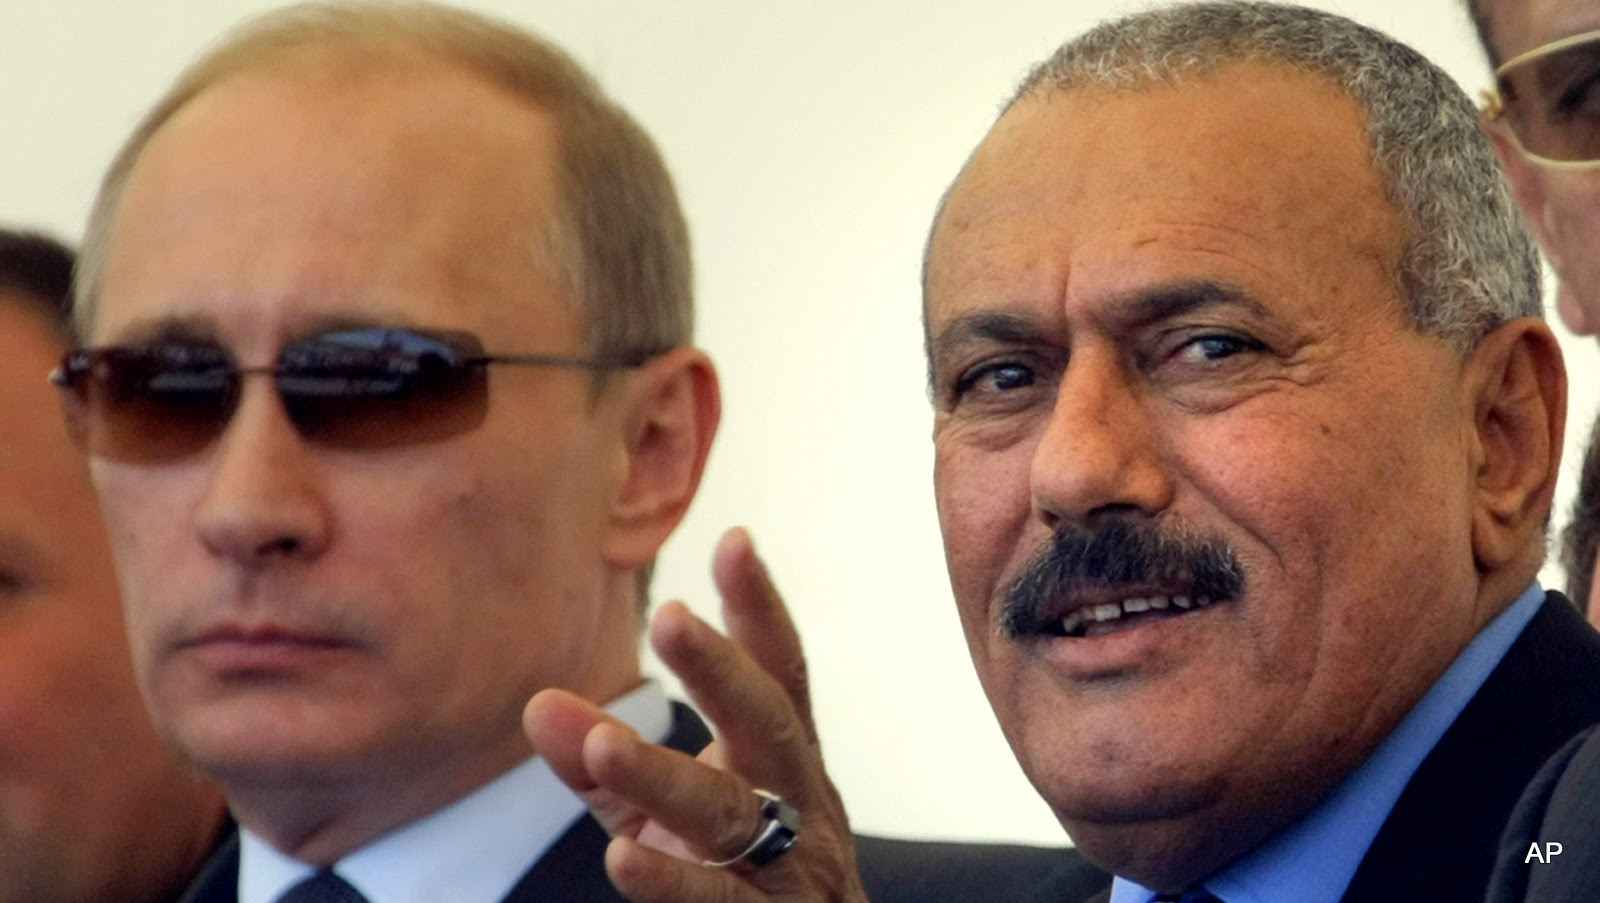 """Russian Prime Minister Vladimir Putin, left, and Yemen's President Ali Abdullah Saleh watch a military show as they attend the international forum """"Technologies in machine building 2010"""" in Zhukovsky outside Moscow, Wednesday, June 30, 2010."""